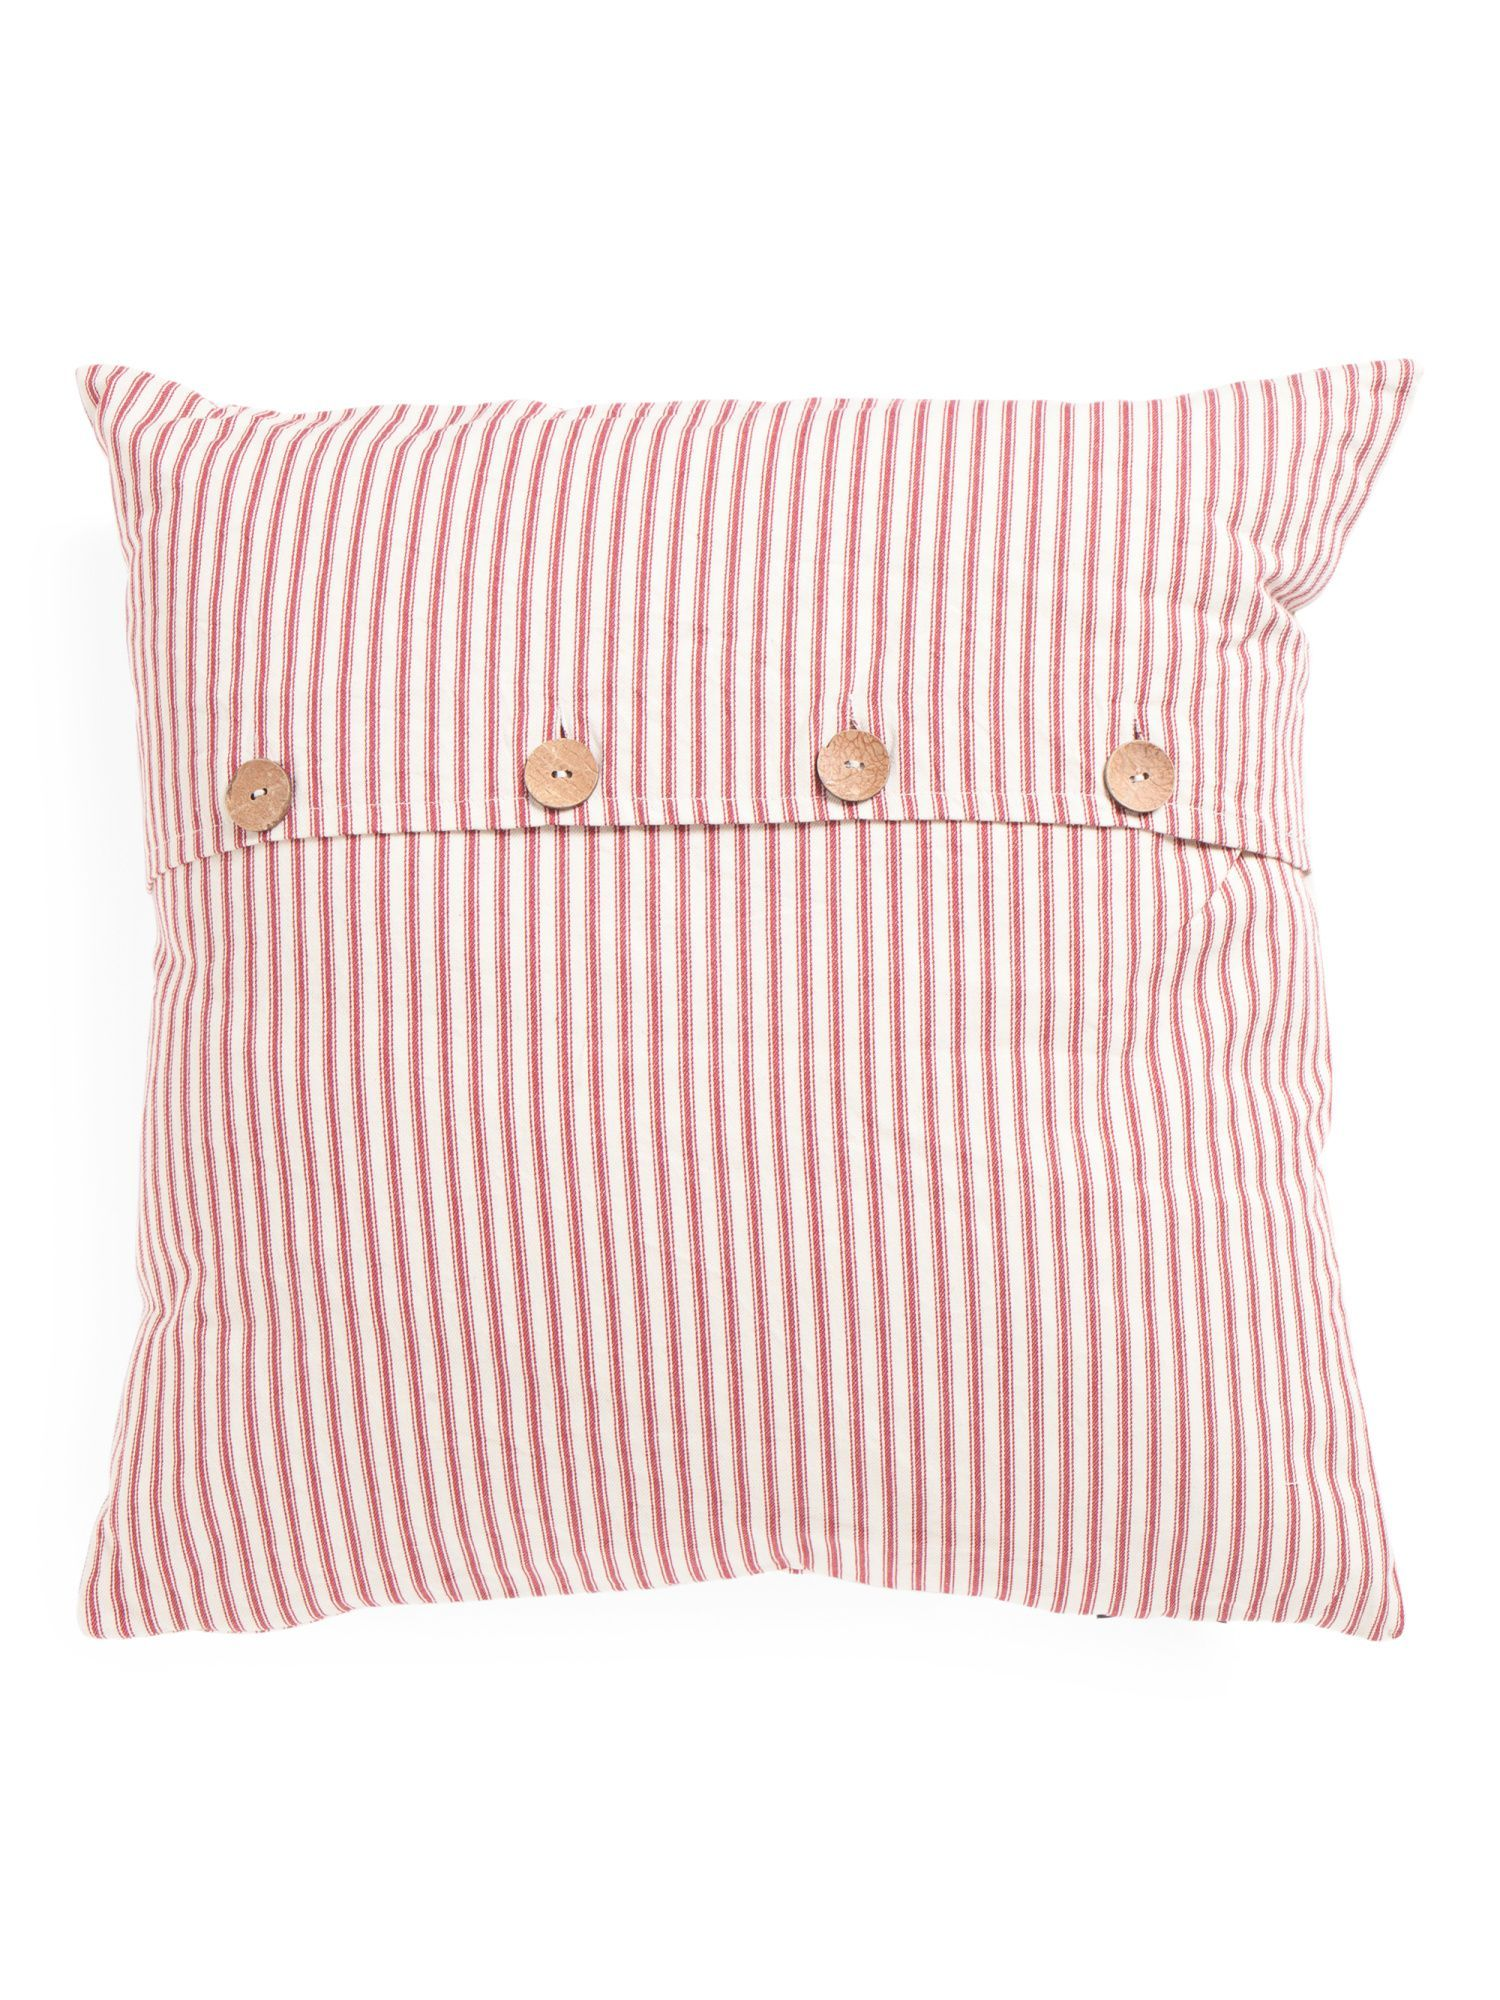 Made In India 20x20 Woven Pillow Pillows, Red pillows